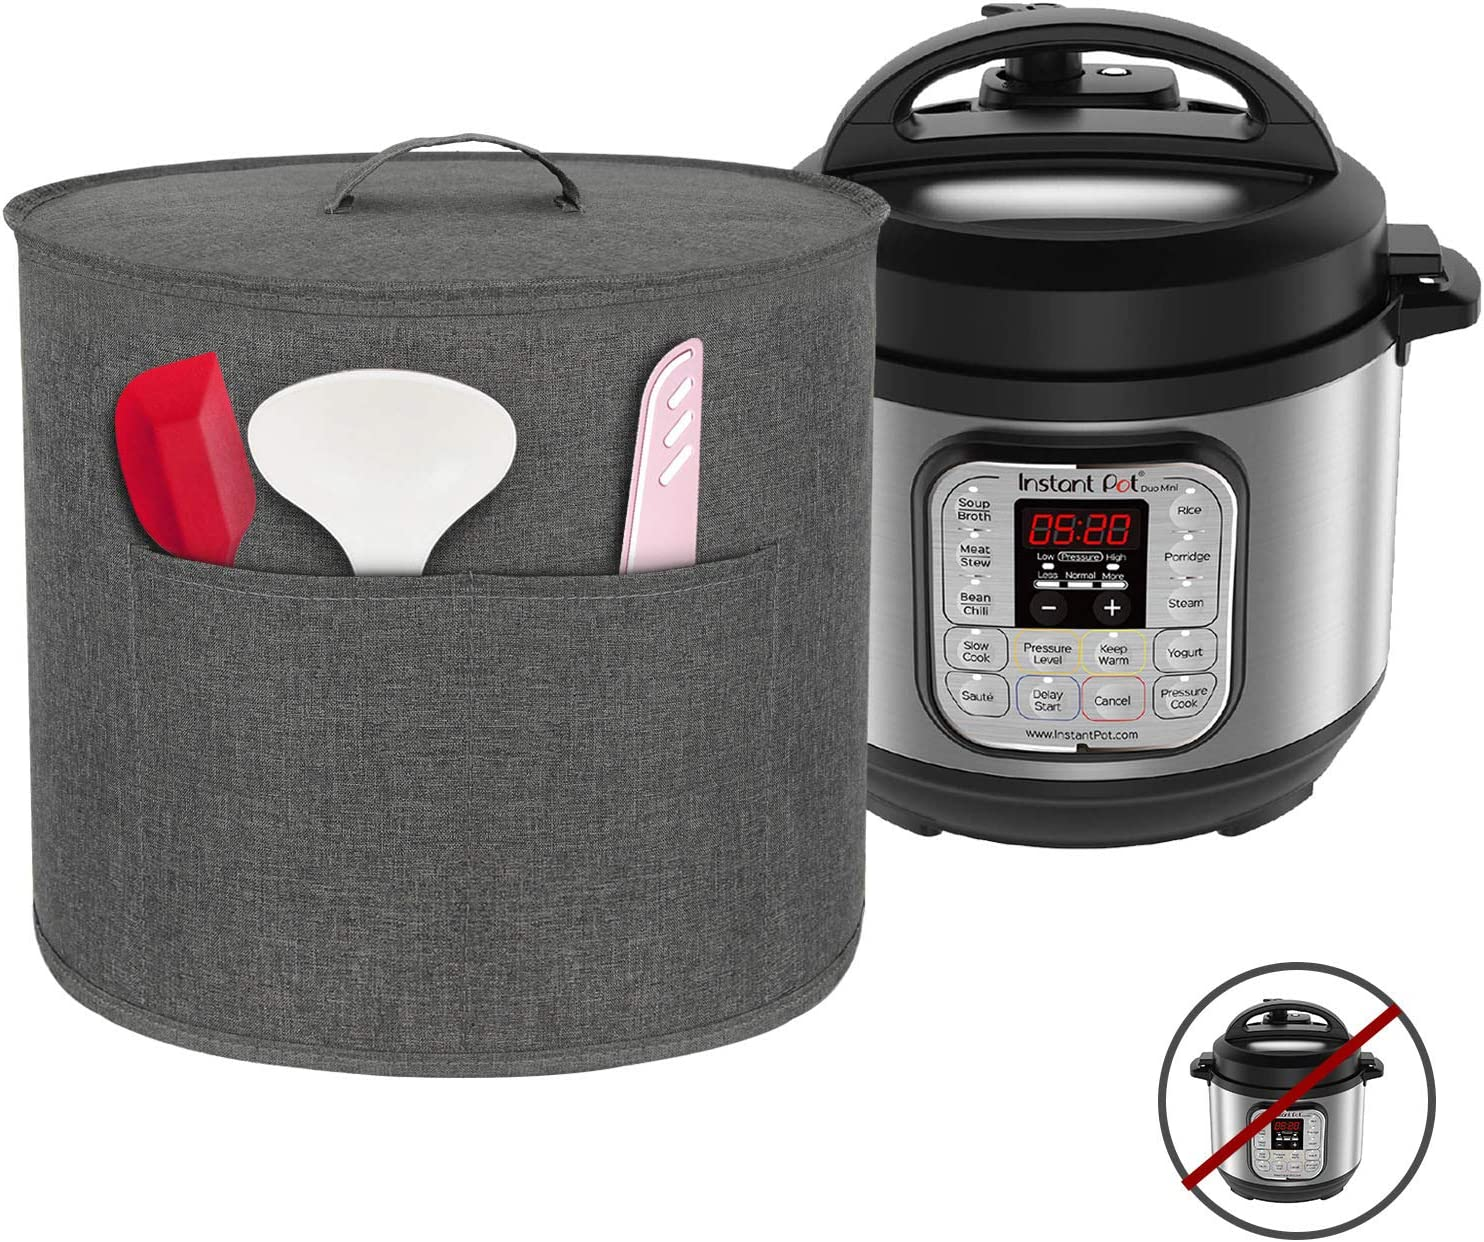 Homai Dust Cover for 3 Quart Instant Pot Pressure Cooker, Cloth Cover with Pockets for Holding Extra Accessories, Gray (Small)